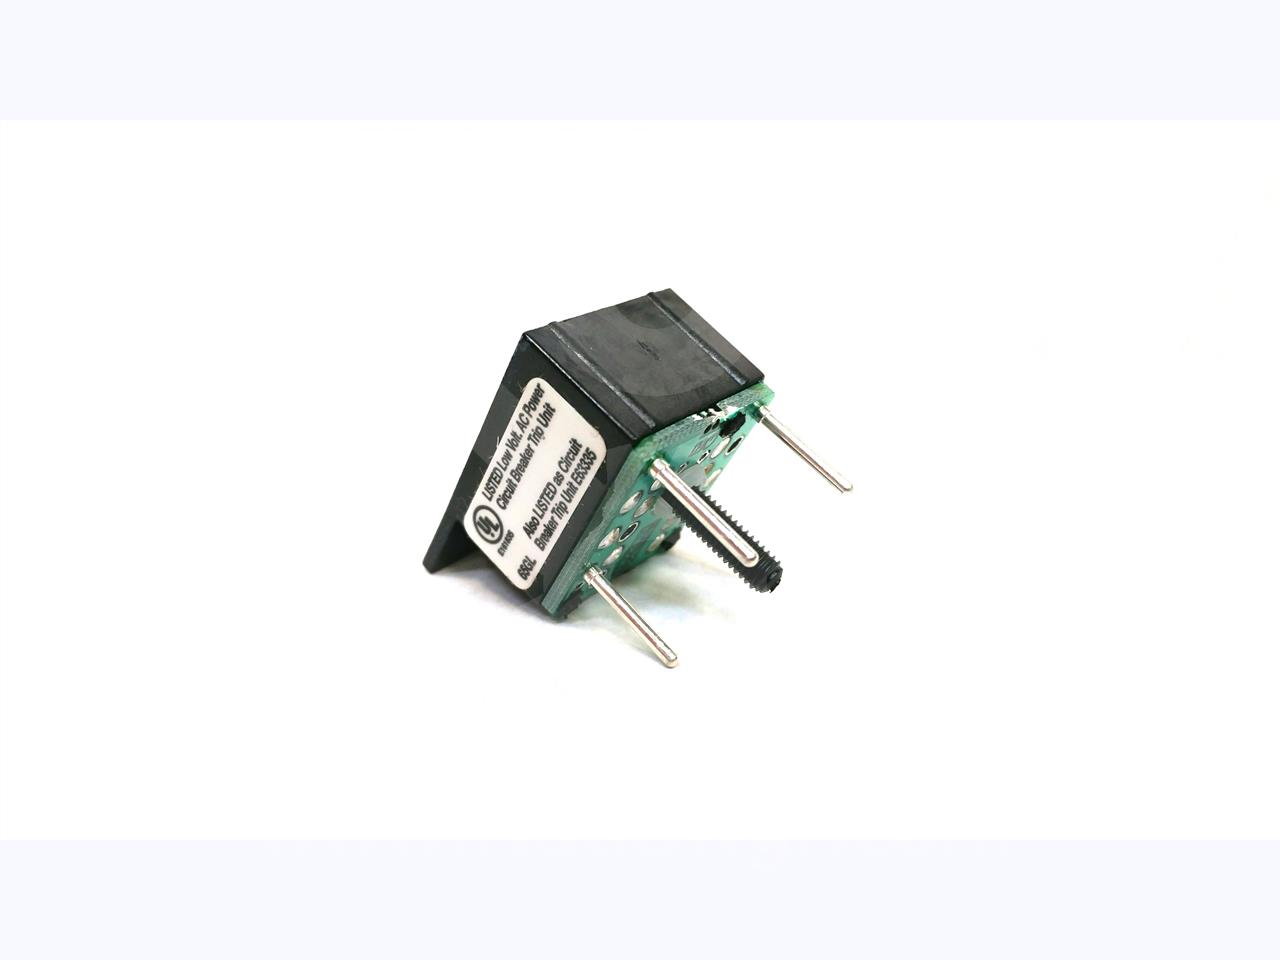 Square D 1200A SQD MASTERPACT RATING PLUG 1600A CT